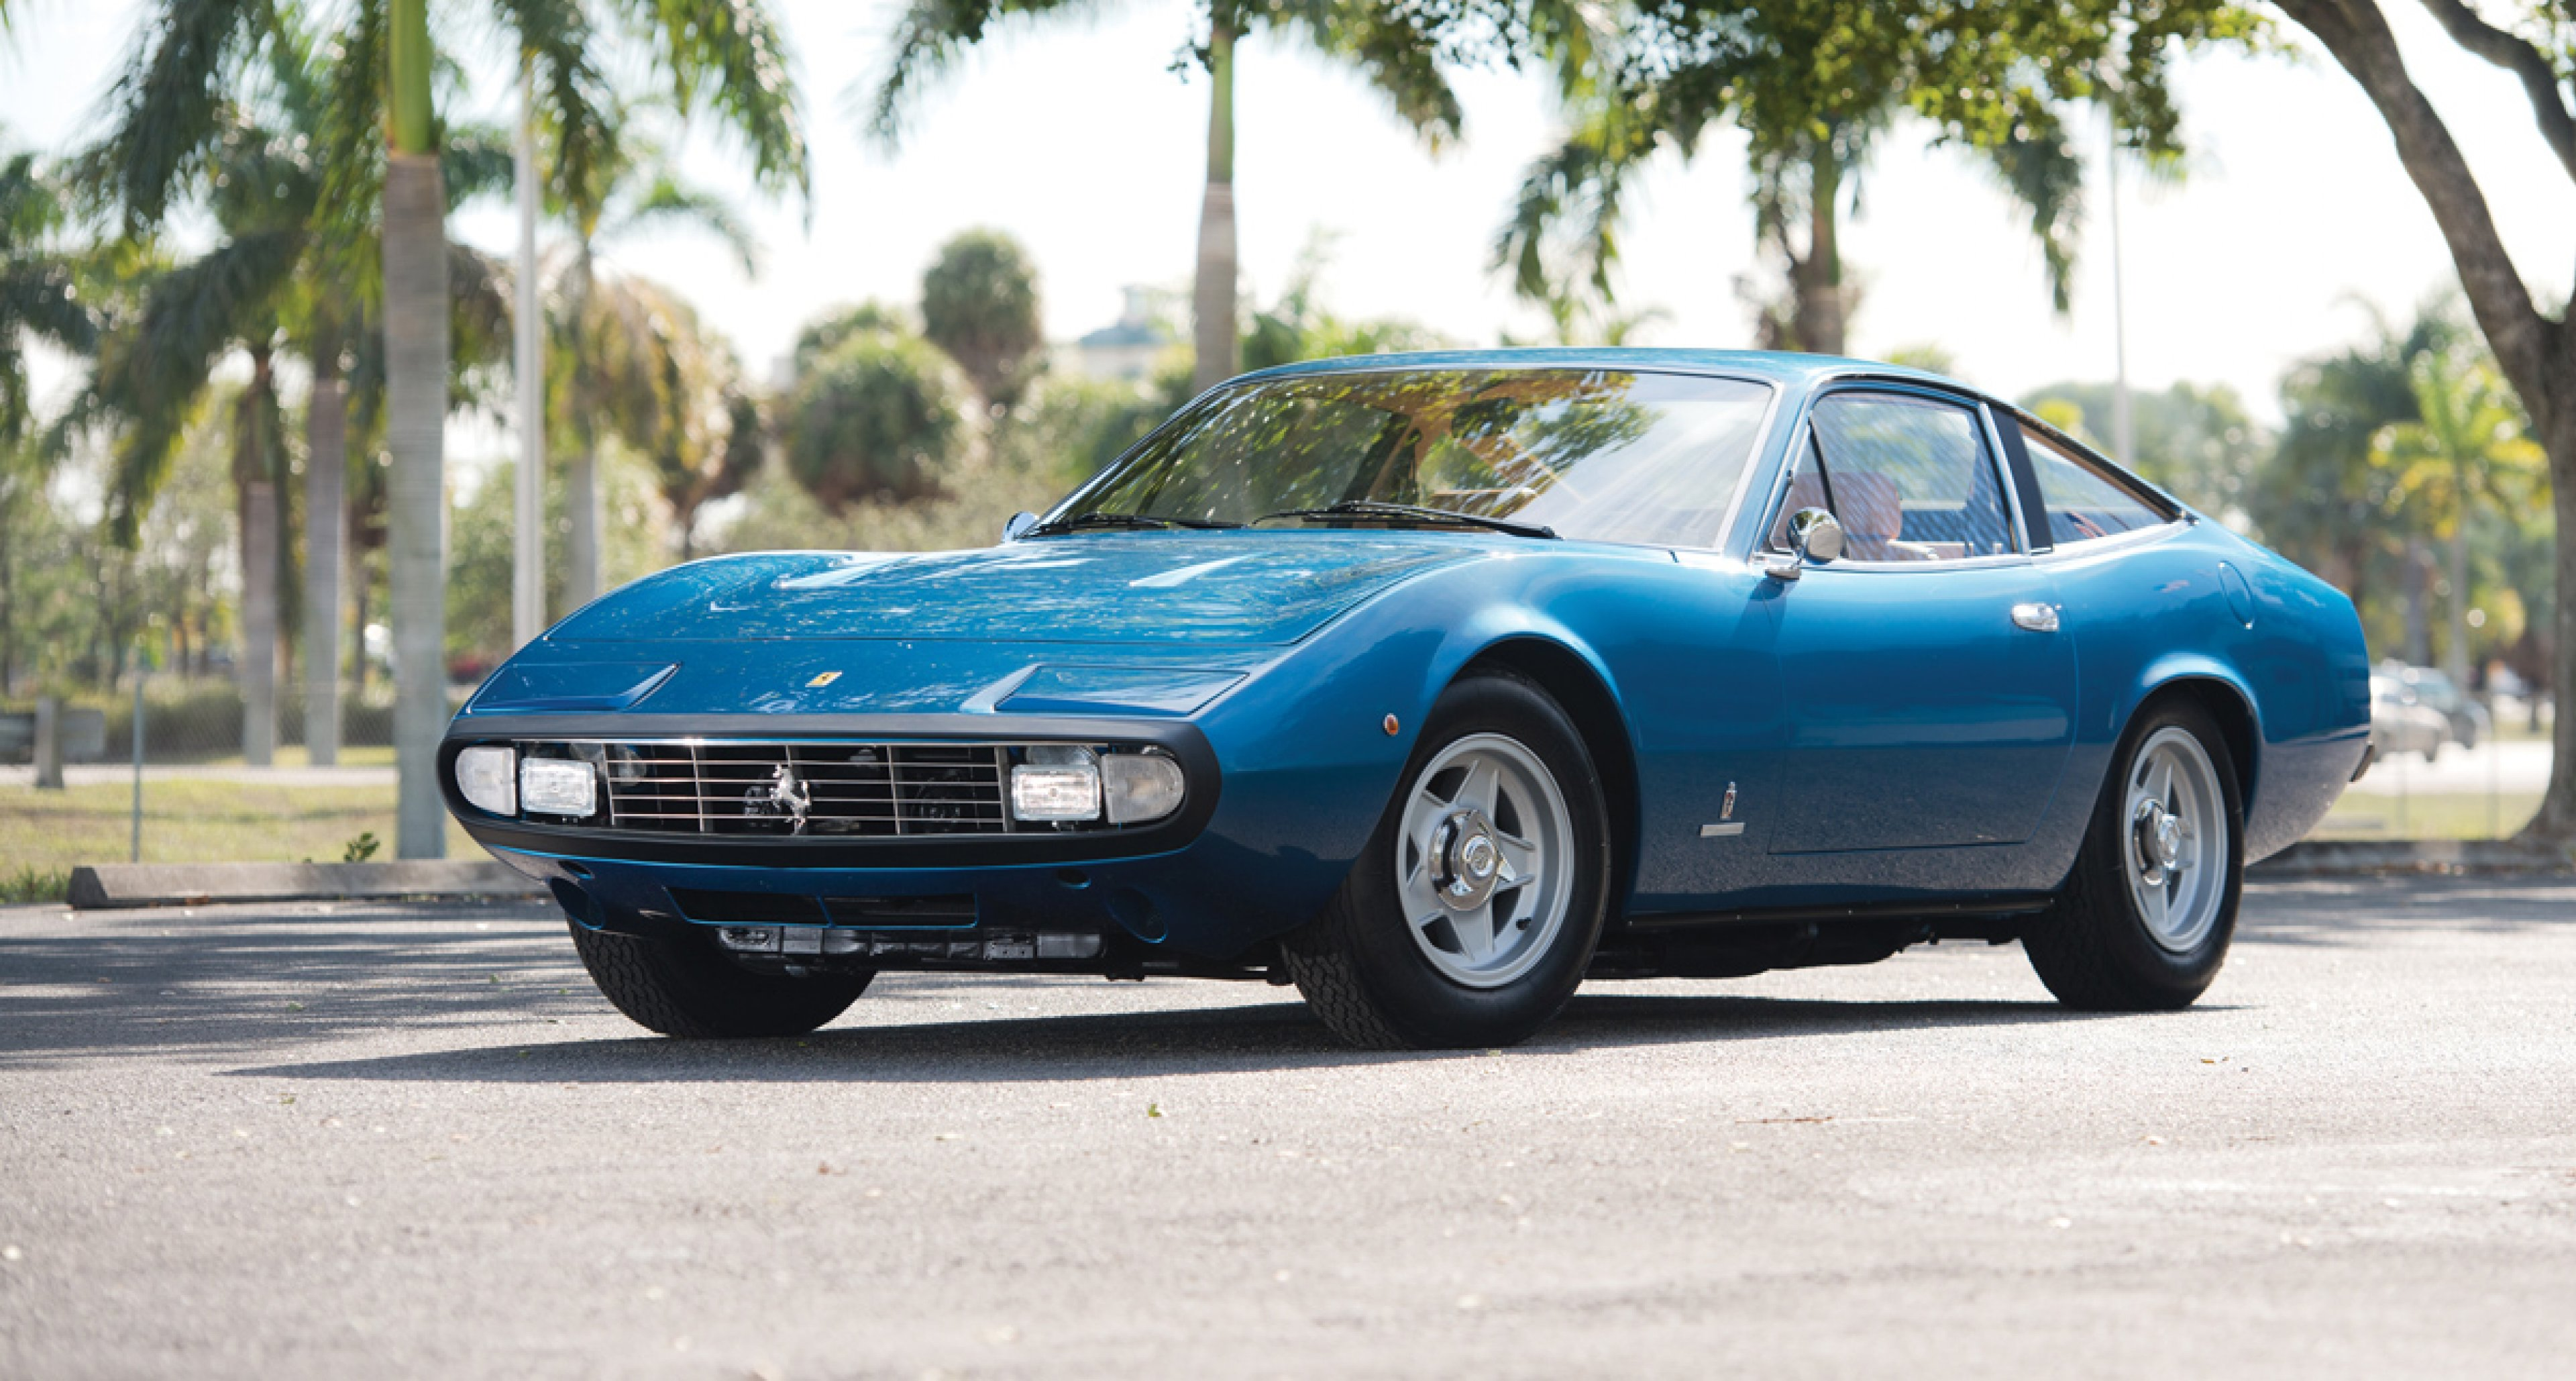 1972 Ferrari 365 GTC/4 to be auctioned at RM's Amelia Island Auction - Price estimate $225,000 - $275,000